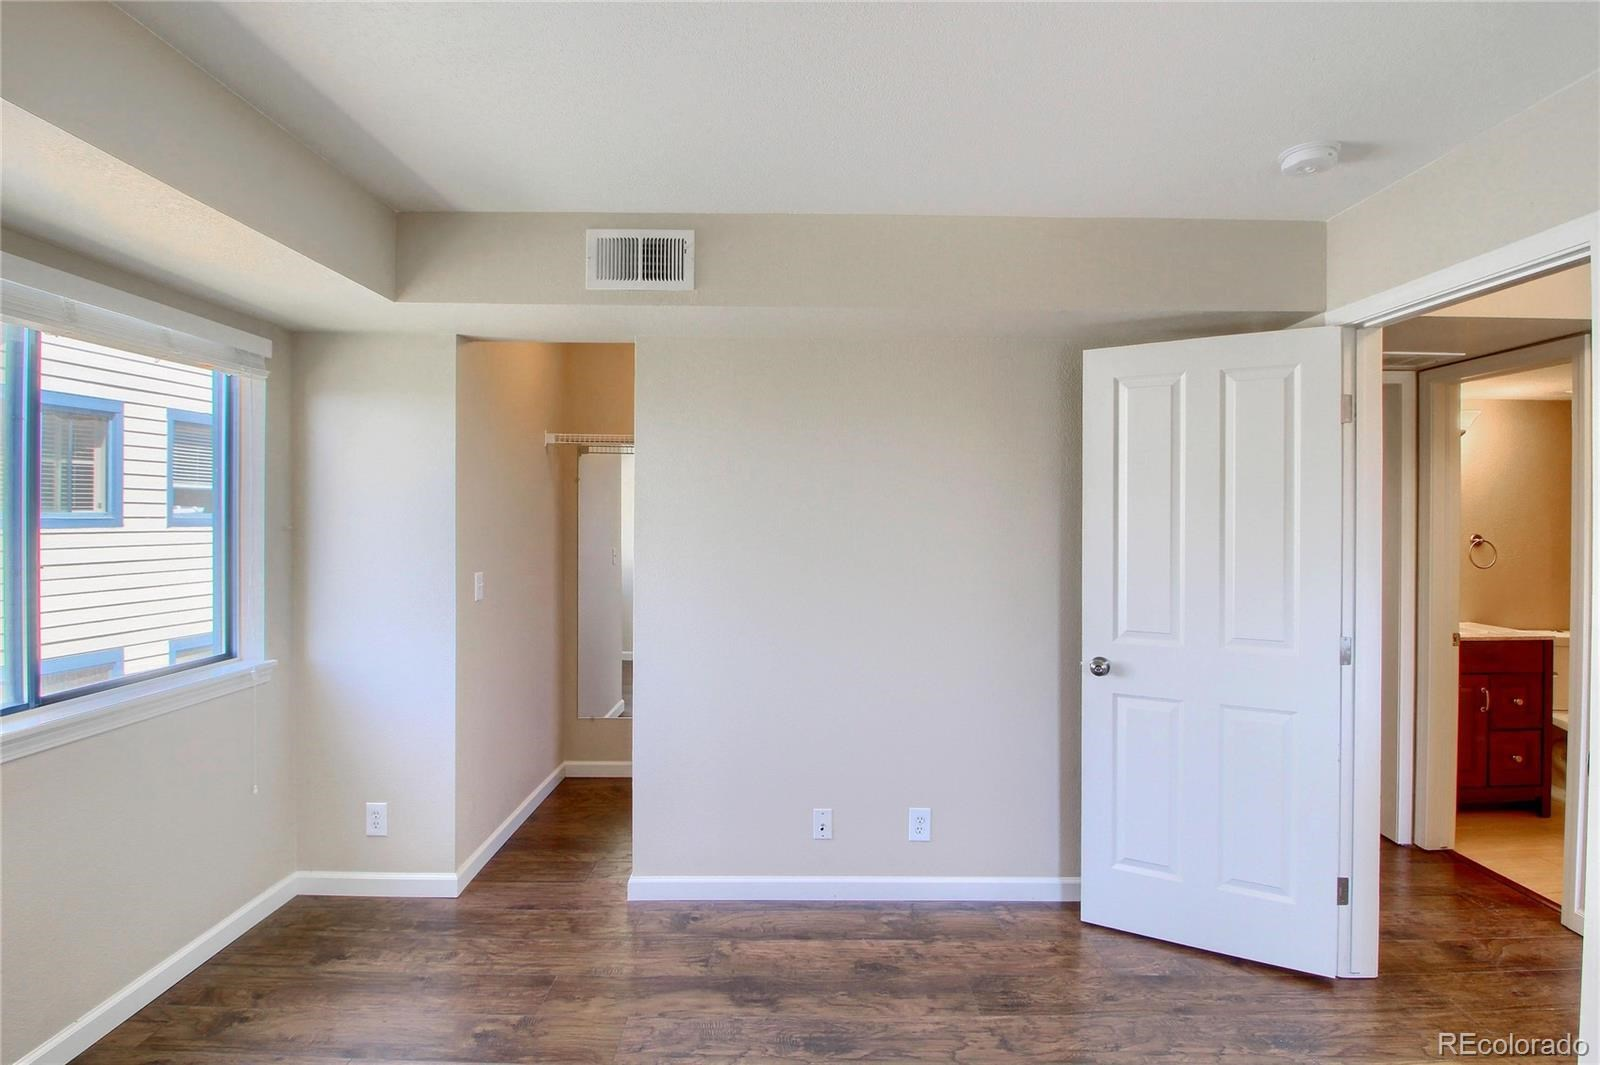 MLS# 5763768 - 25 - 6380 S Boston Street #303, Greenwood Village, CO 80111